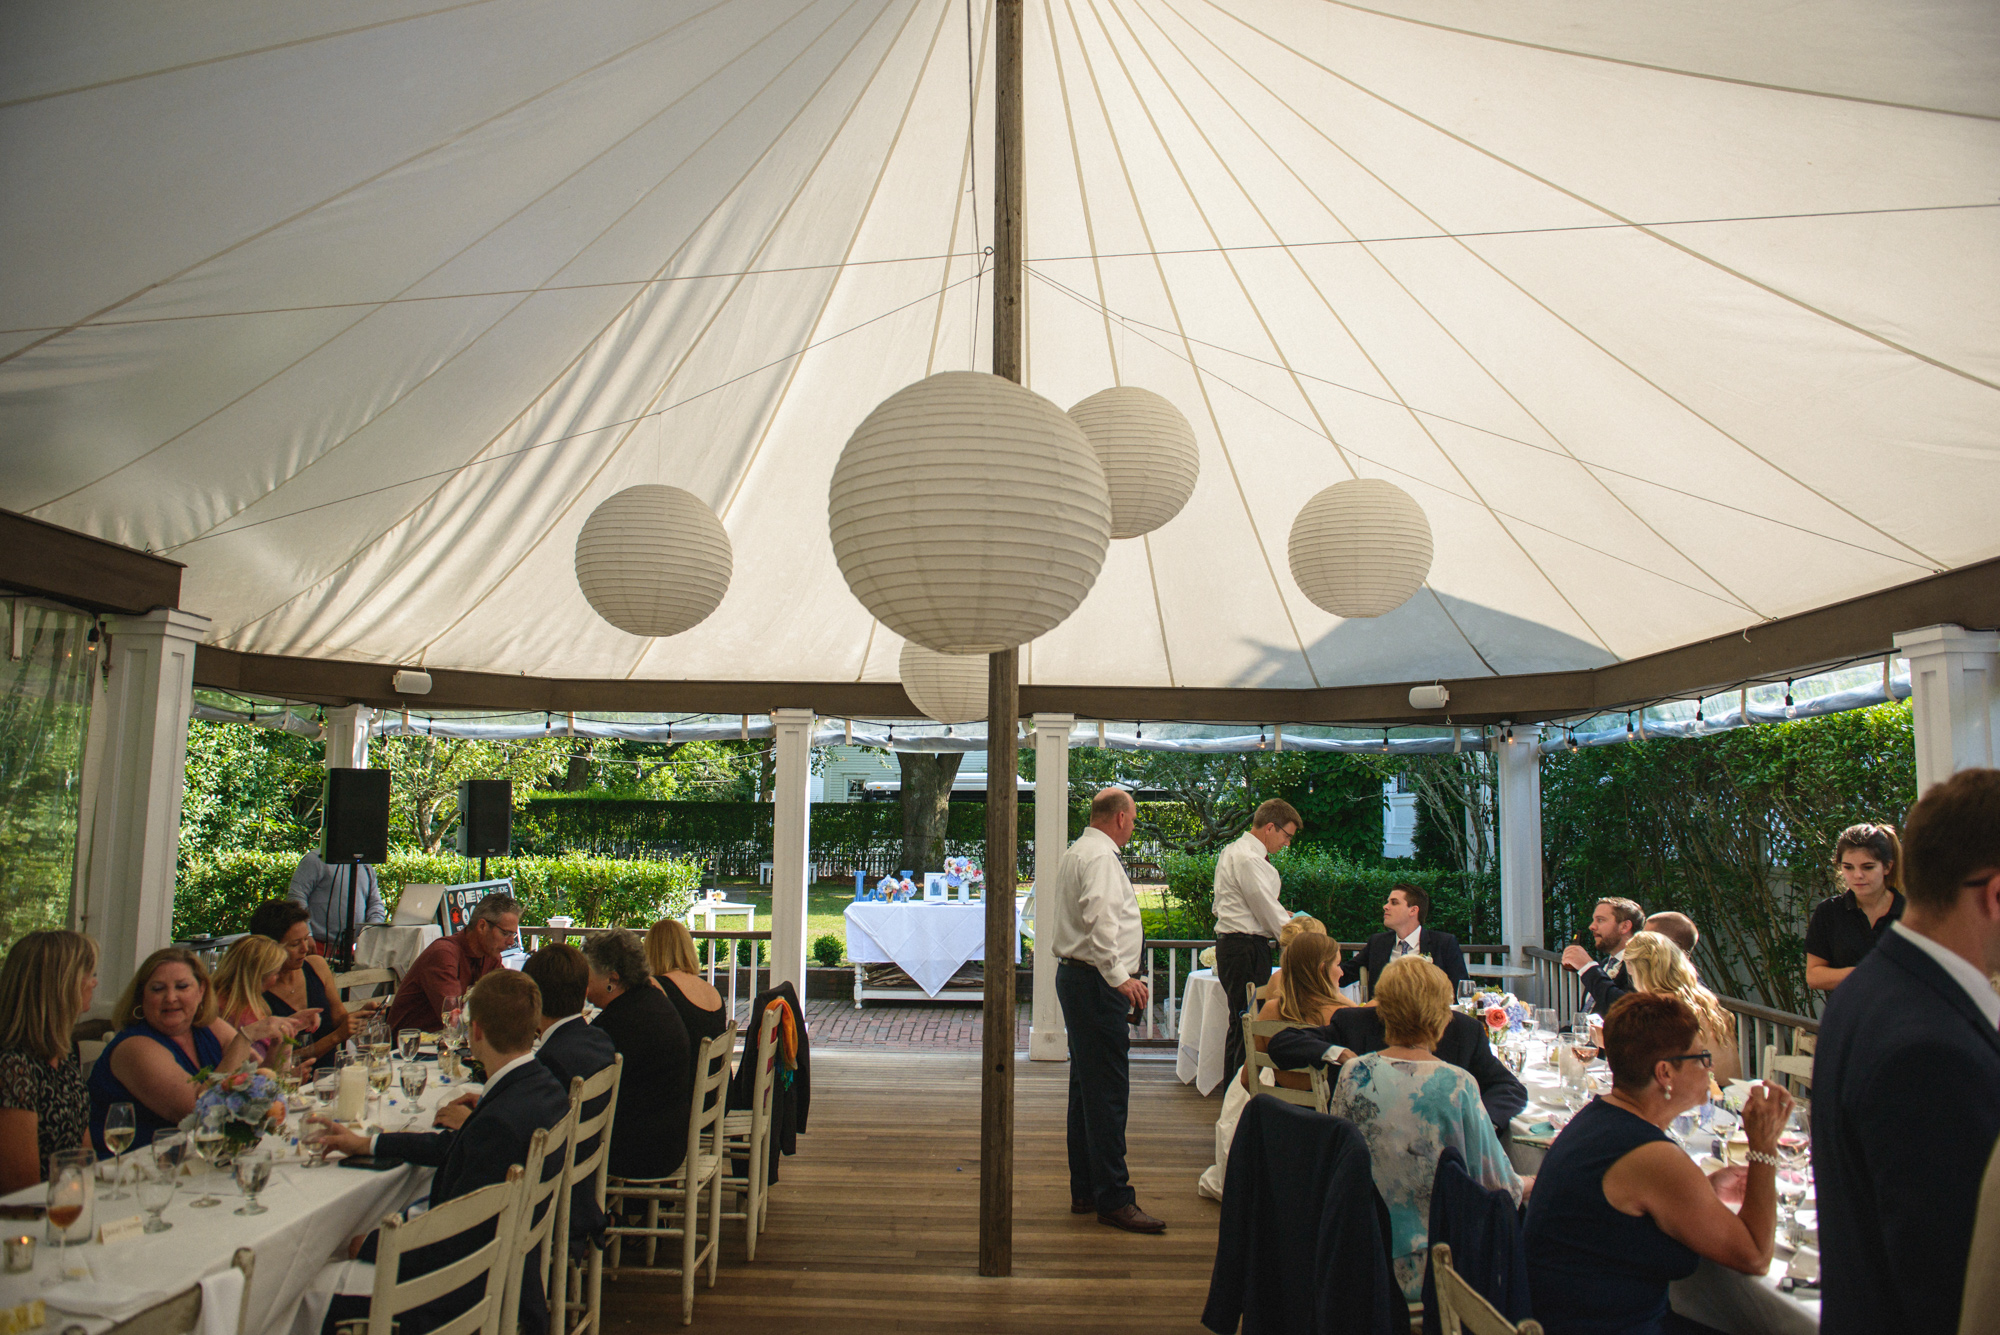 The sperry pole tent  at Atria Restaurant and Brick Cellar Bar in Edgartown photo by David Welch Photography